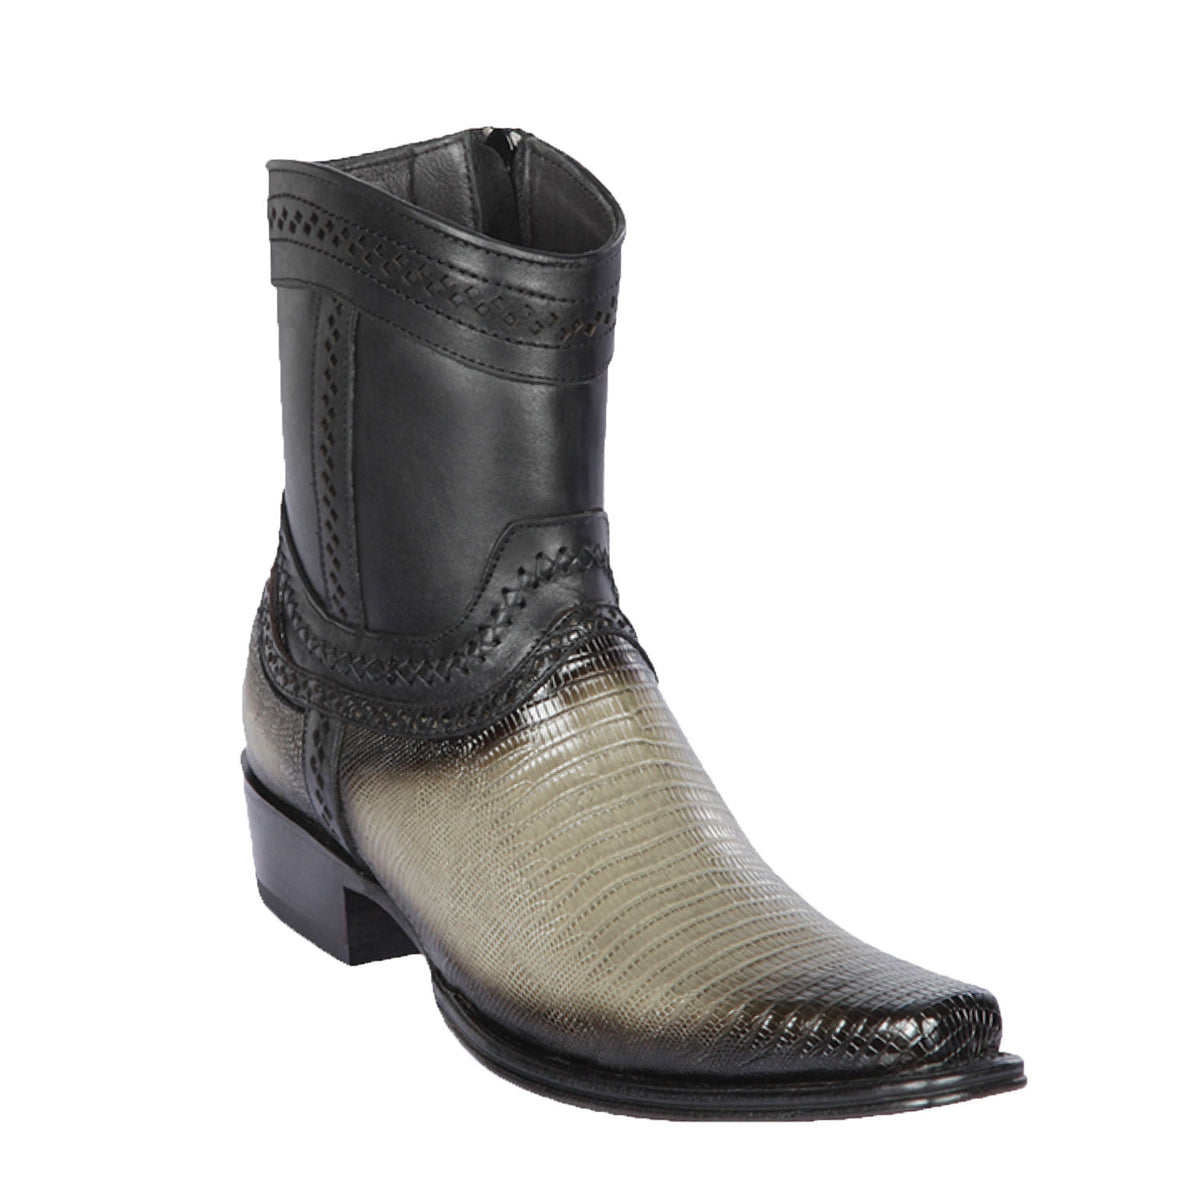 Lizard Skin Short Boot LAB-76B07